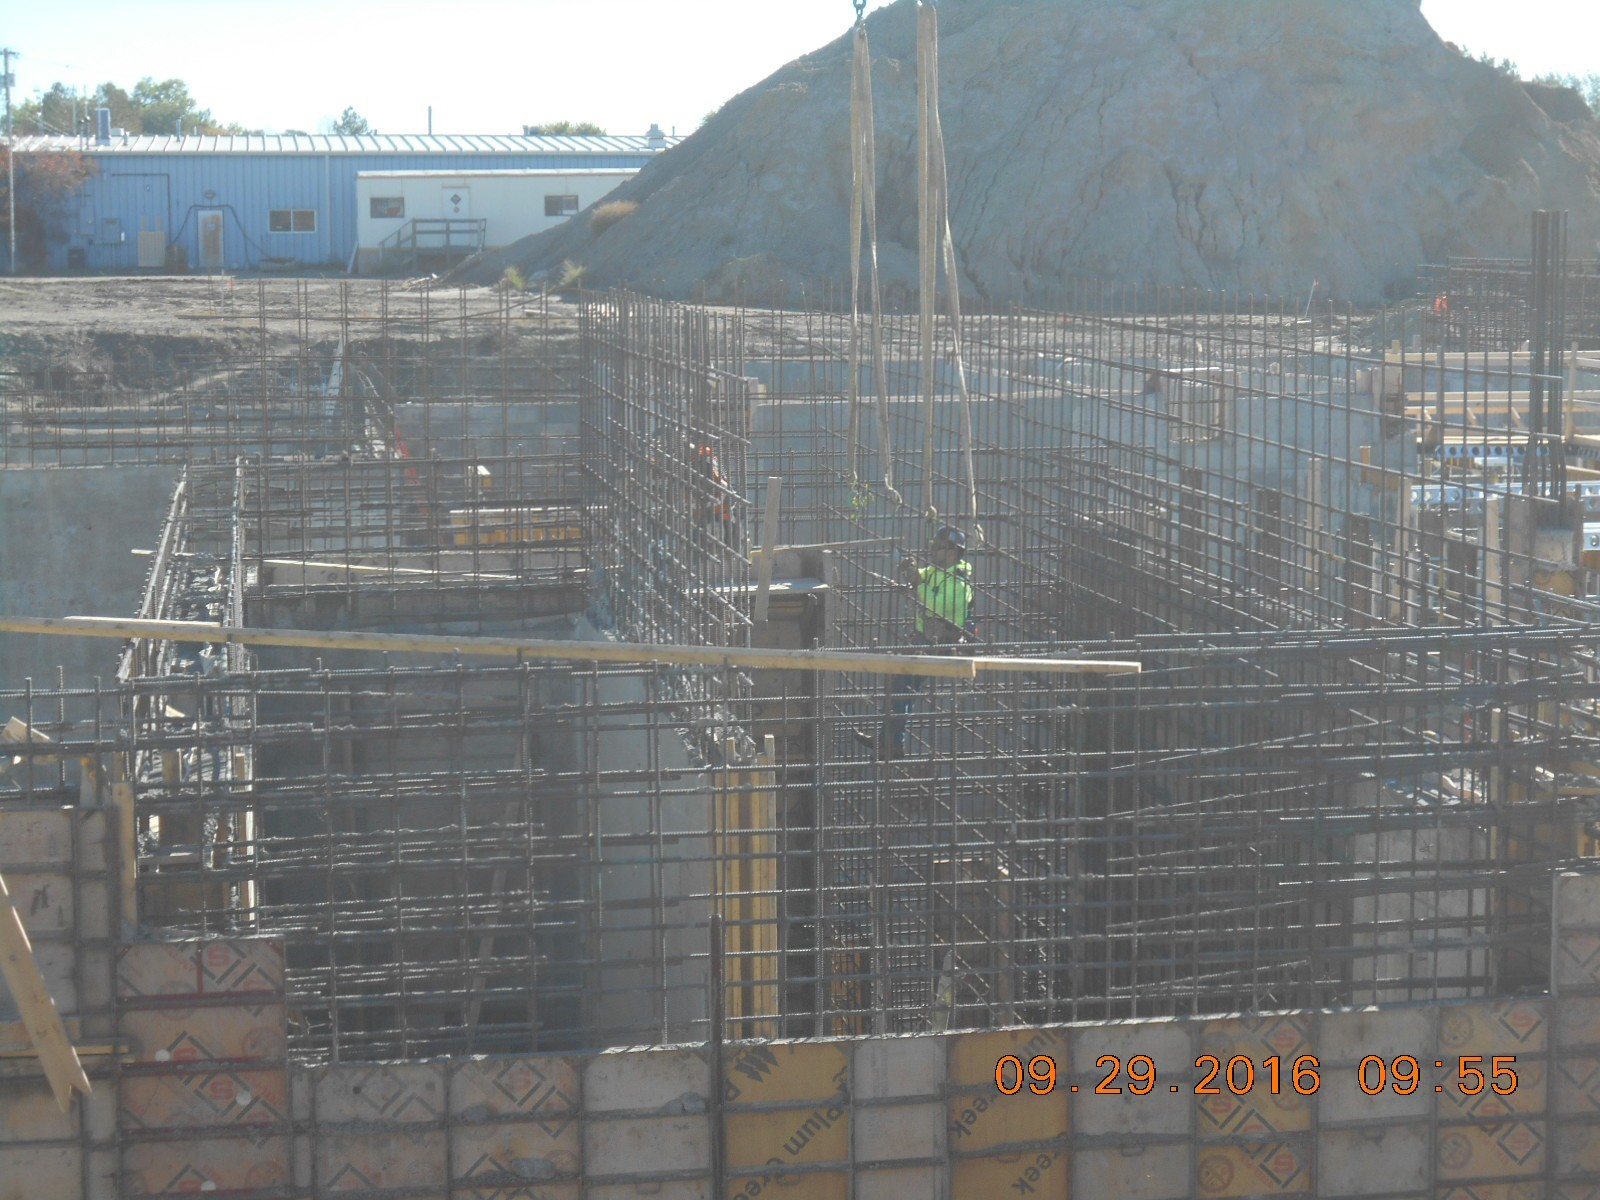 Harris Rebar placing the wall reinforcing for the Wet Well baffle wall W608.